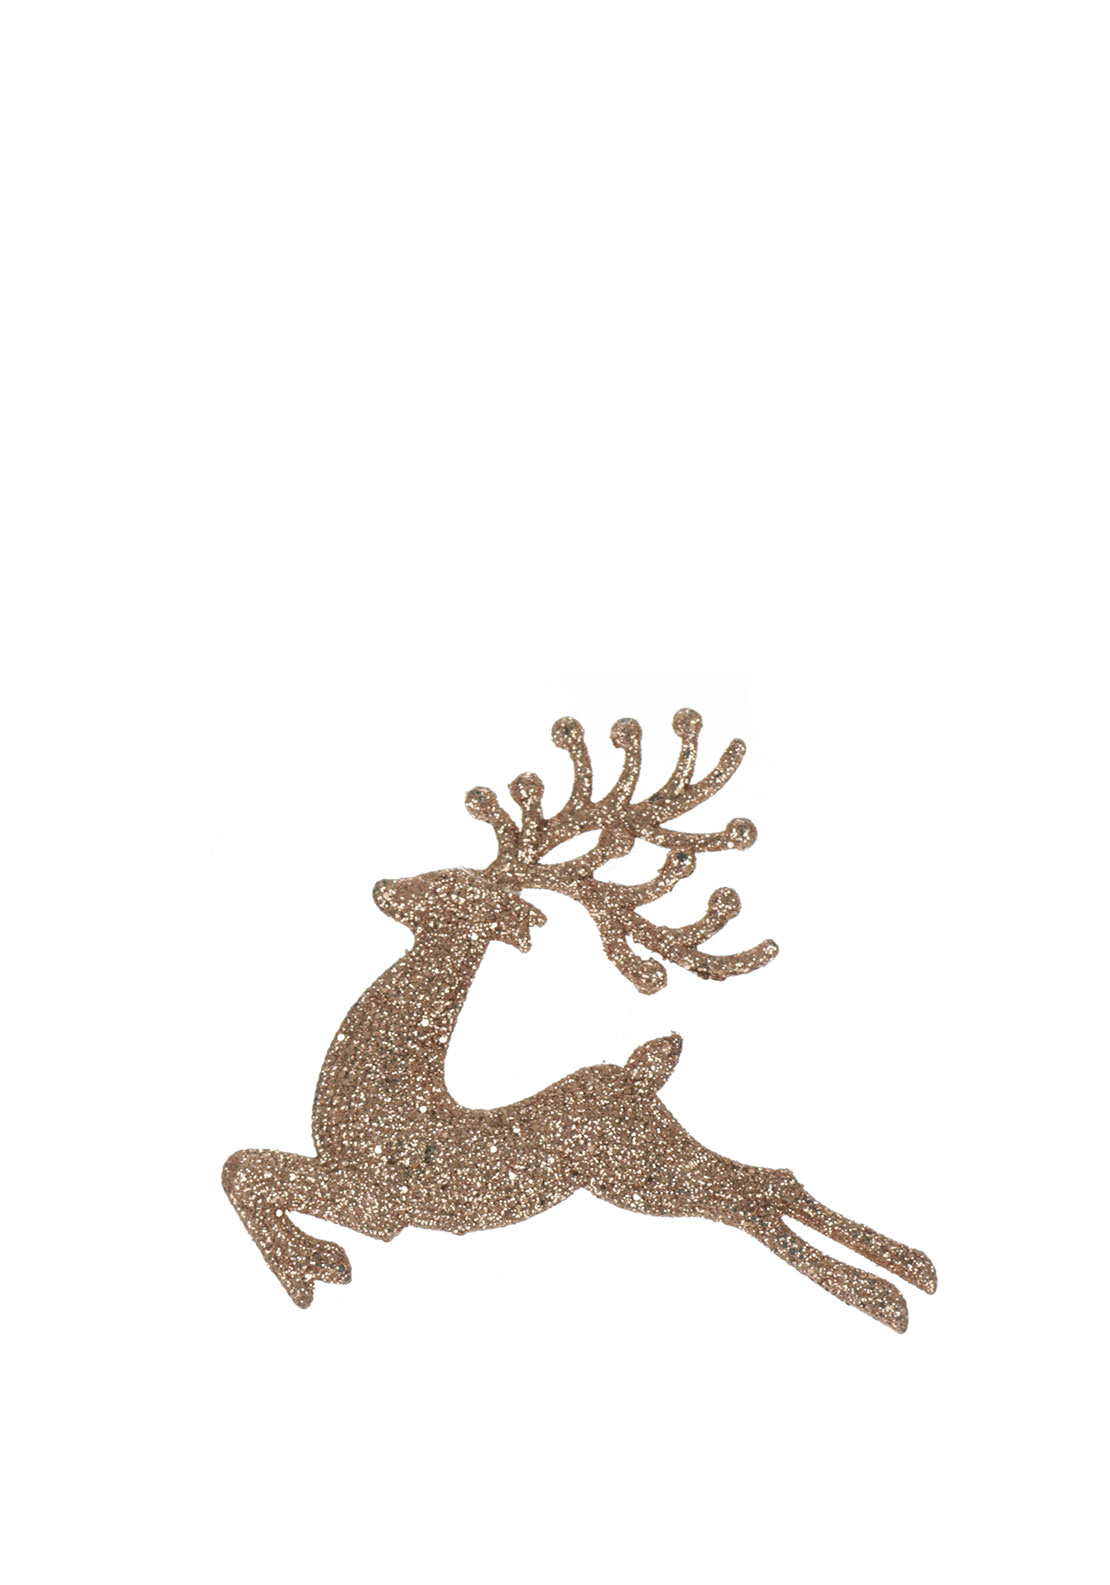 Leaping Reindeer Tree Decoration